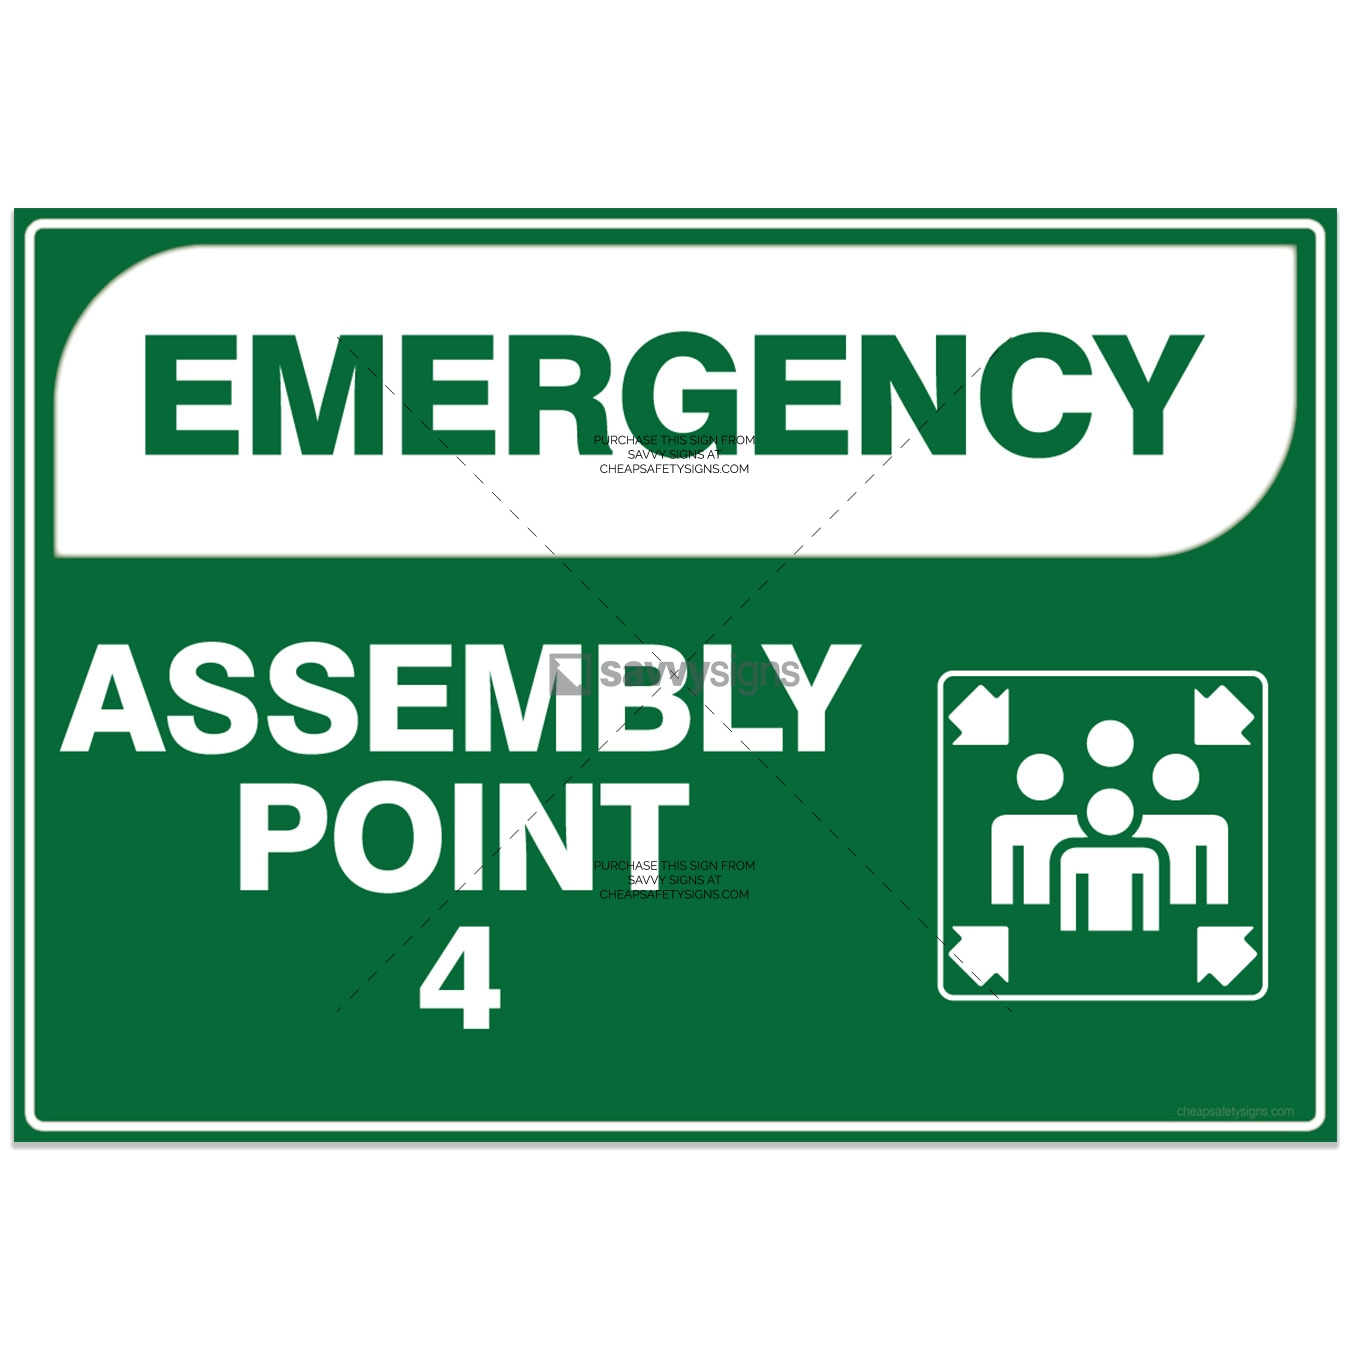 SSEME3006-EMERGENCY-Workplace-Safety-Signs_Savvy-Signs_v3